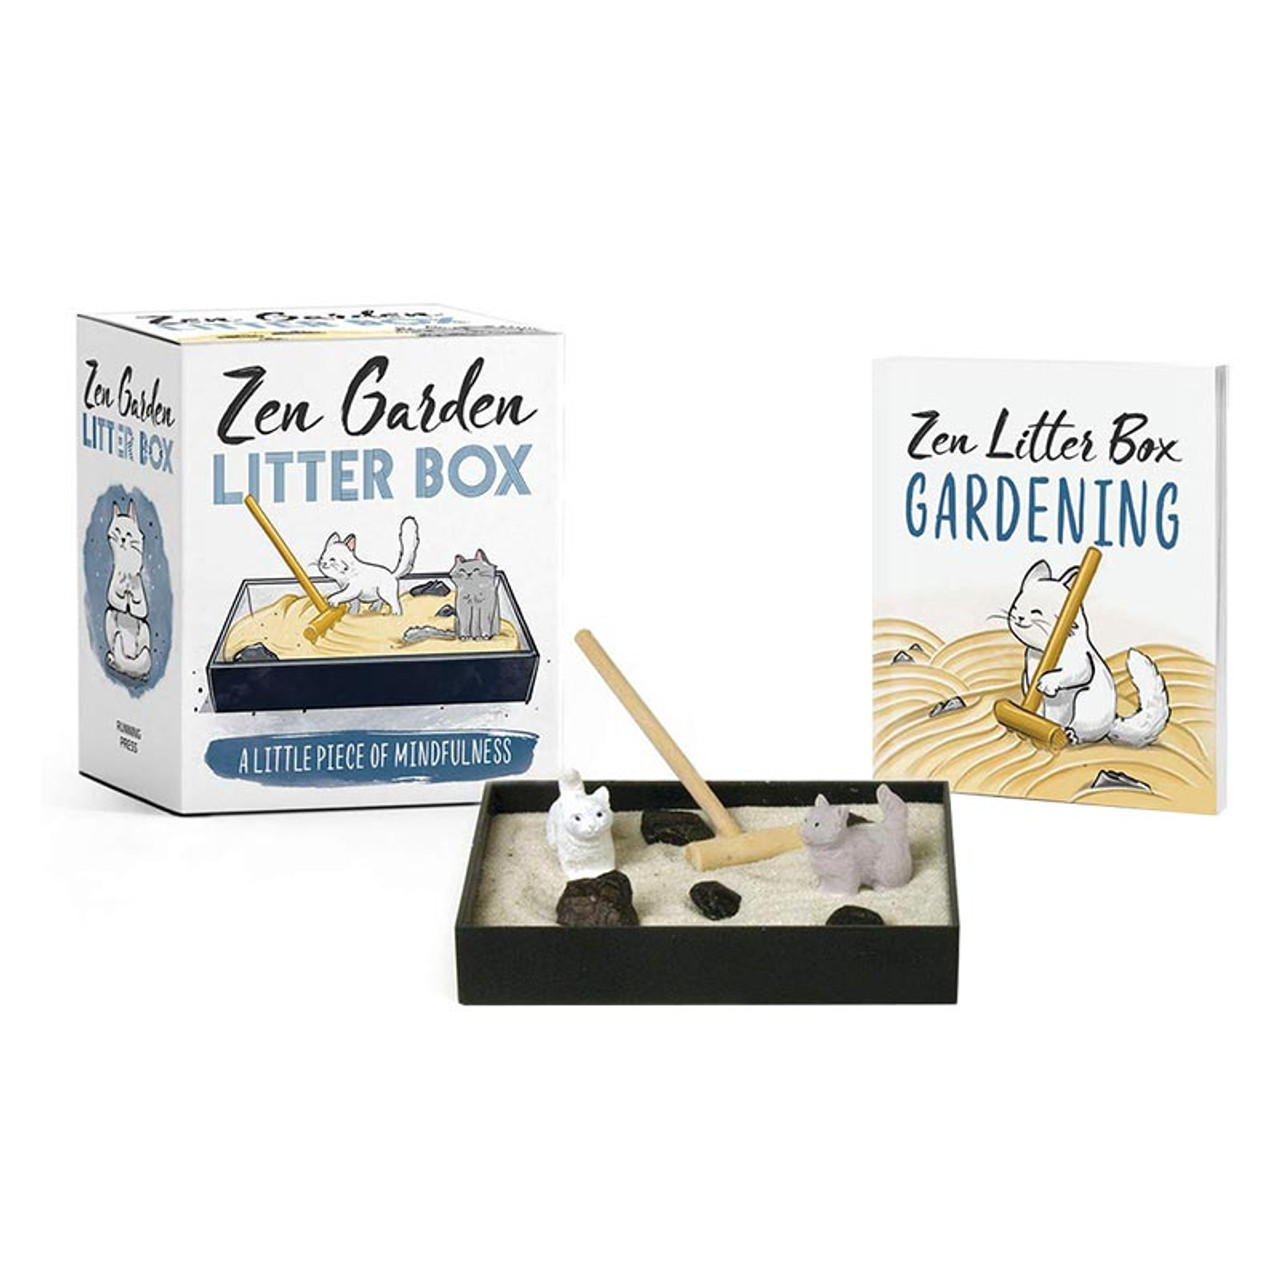 Zen Garden Cat Litter Box